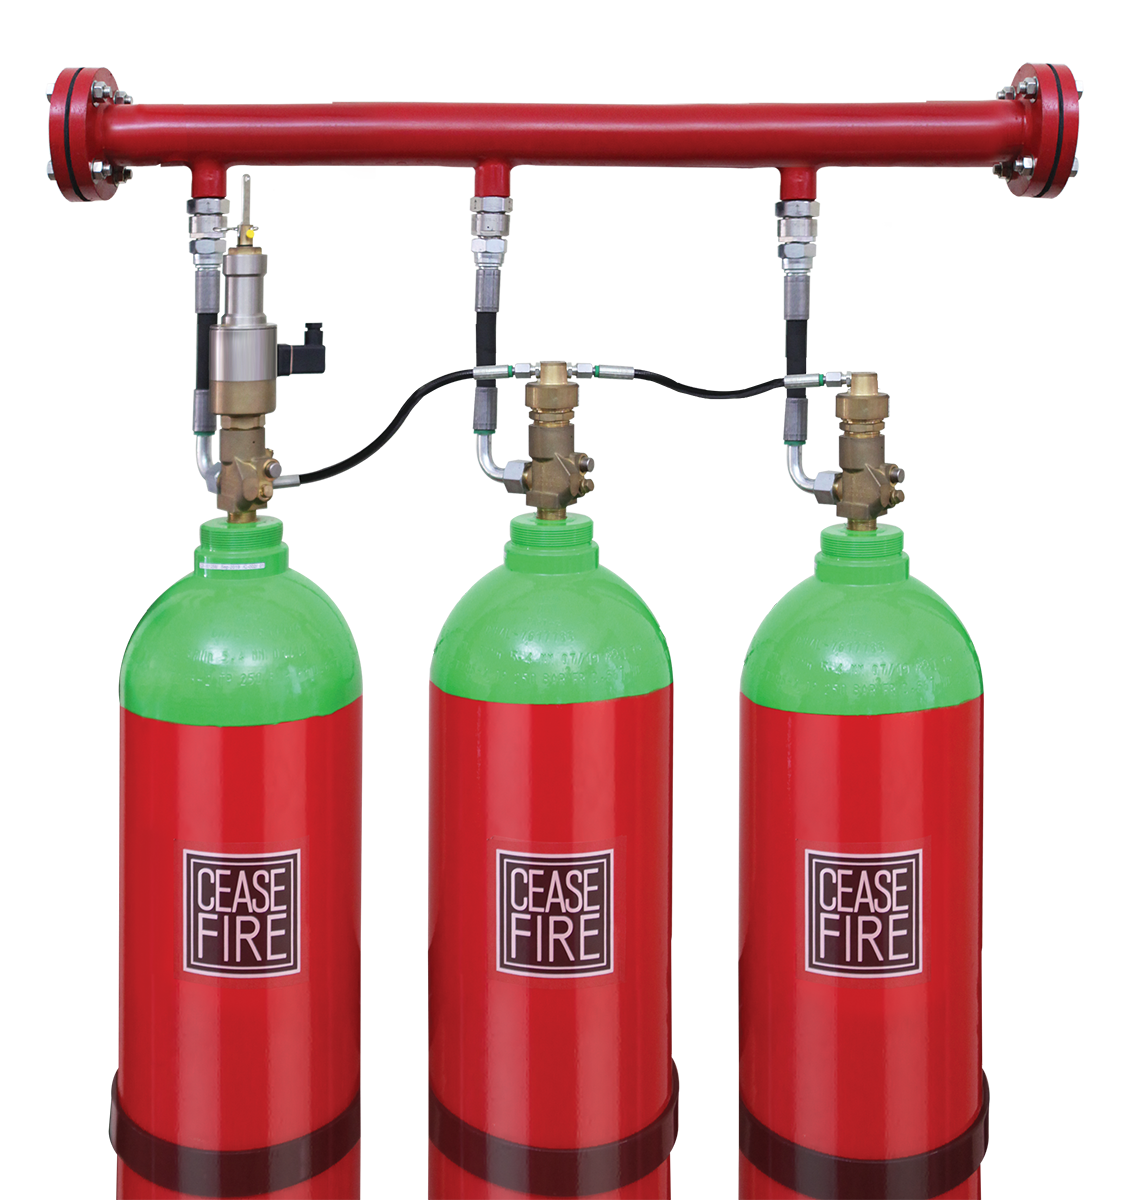 Inert Gas & CO2 Based Fire Suppression Systems